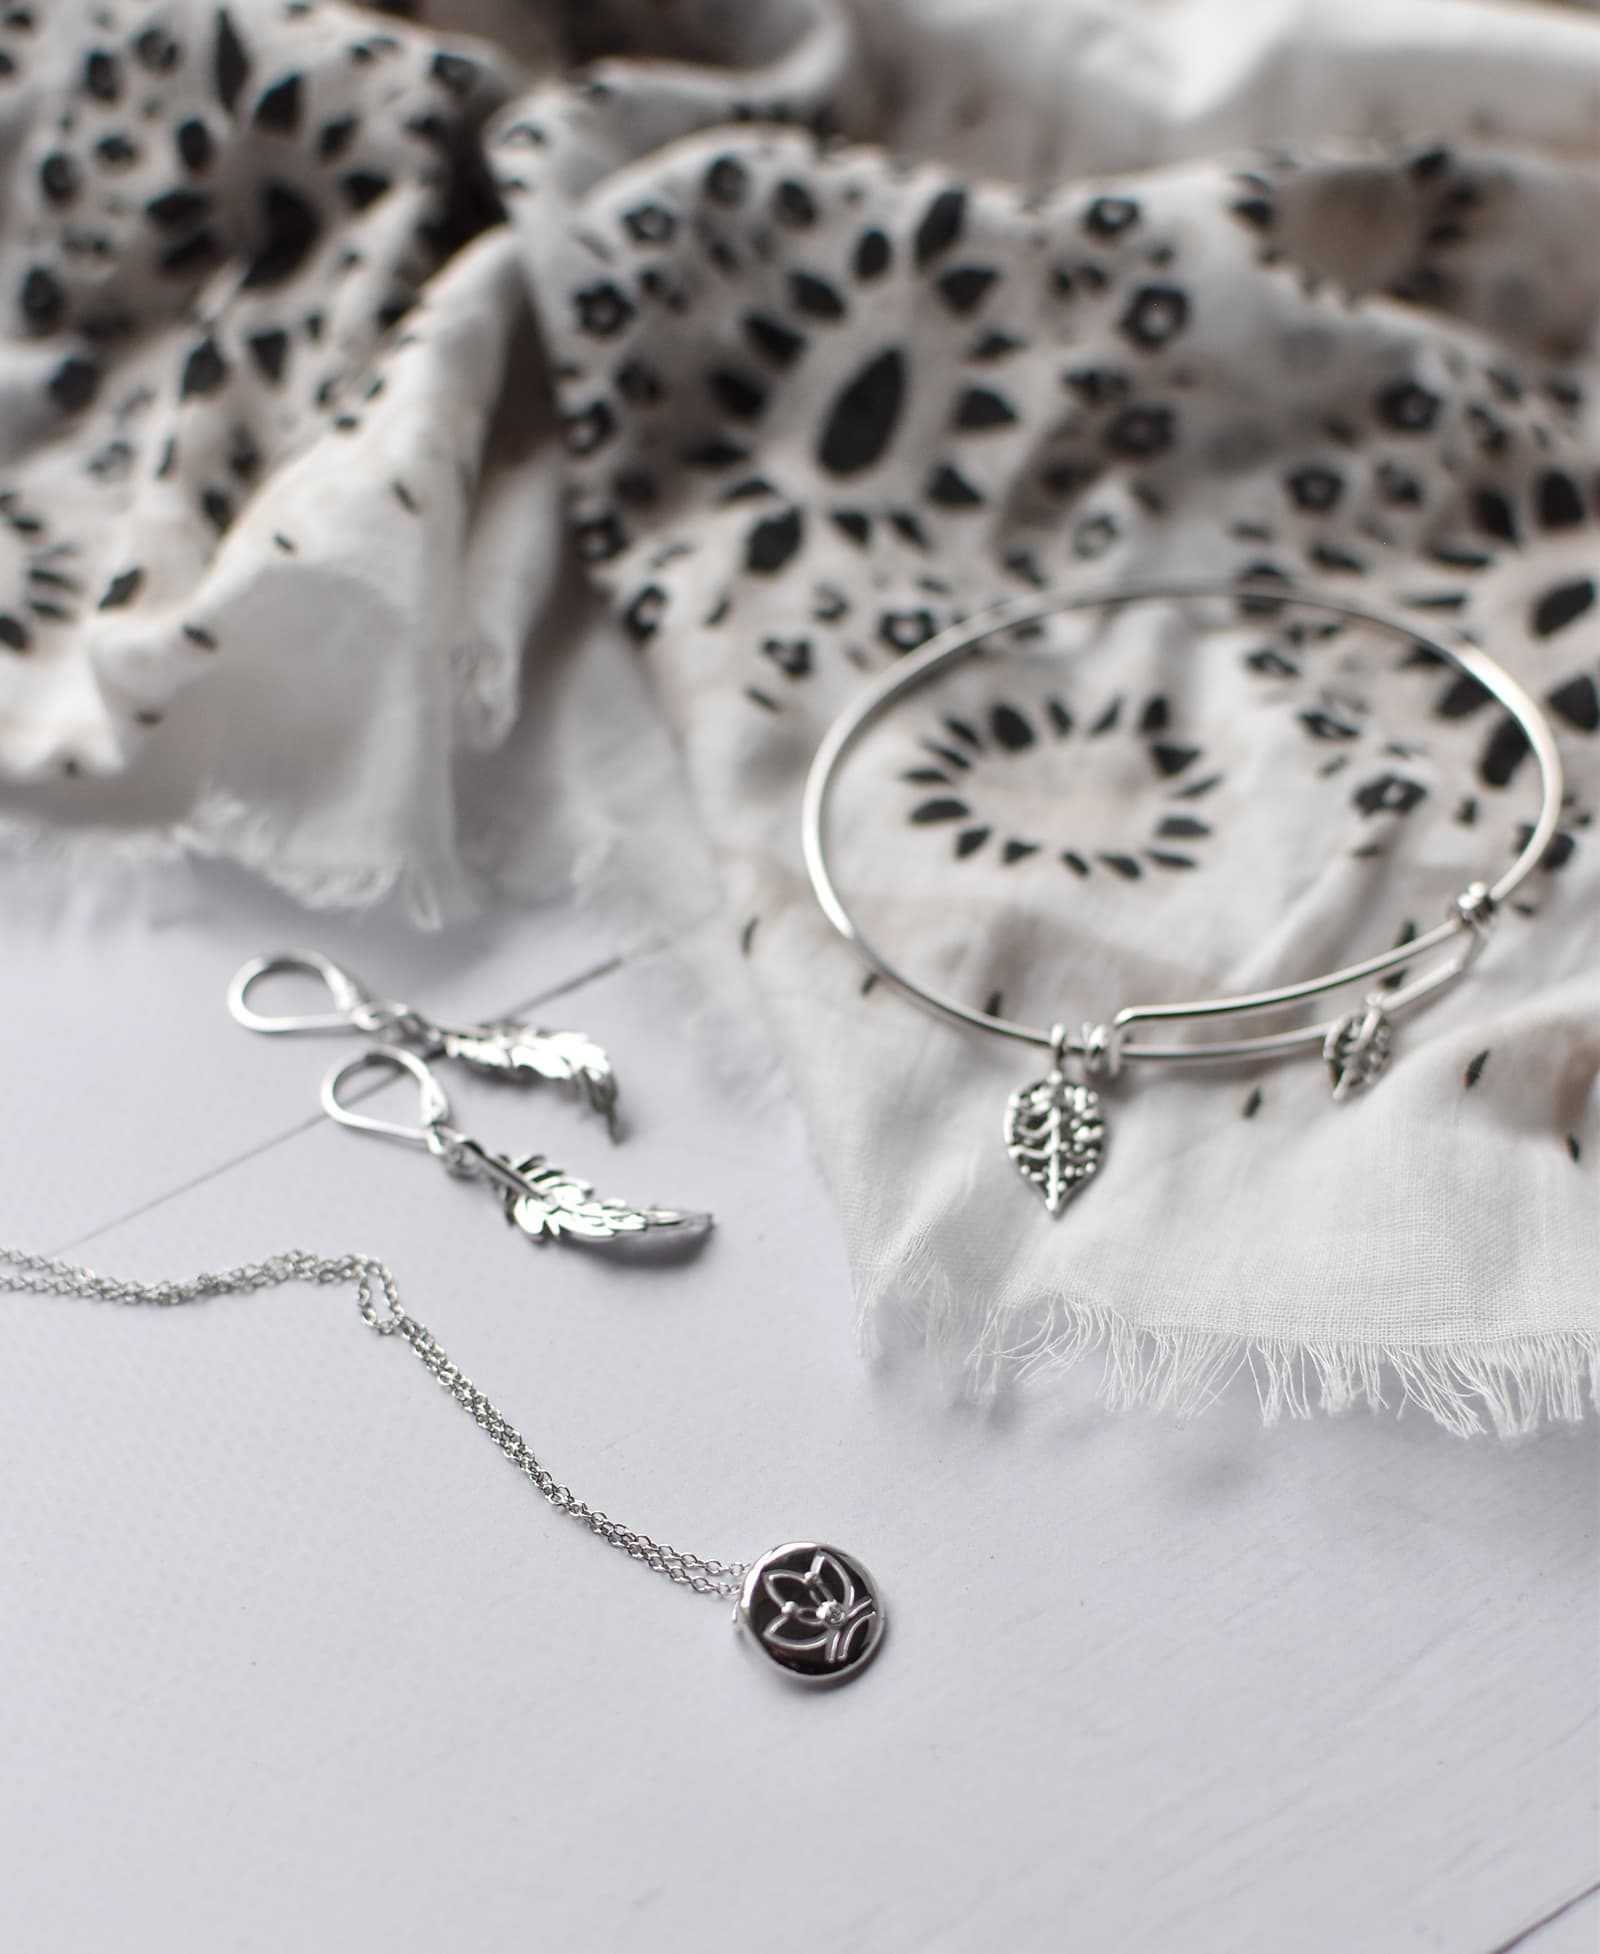 Boho By Spence | Ethical & Environmentally-Friendly Jewelry